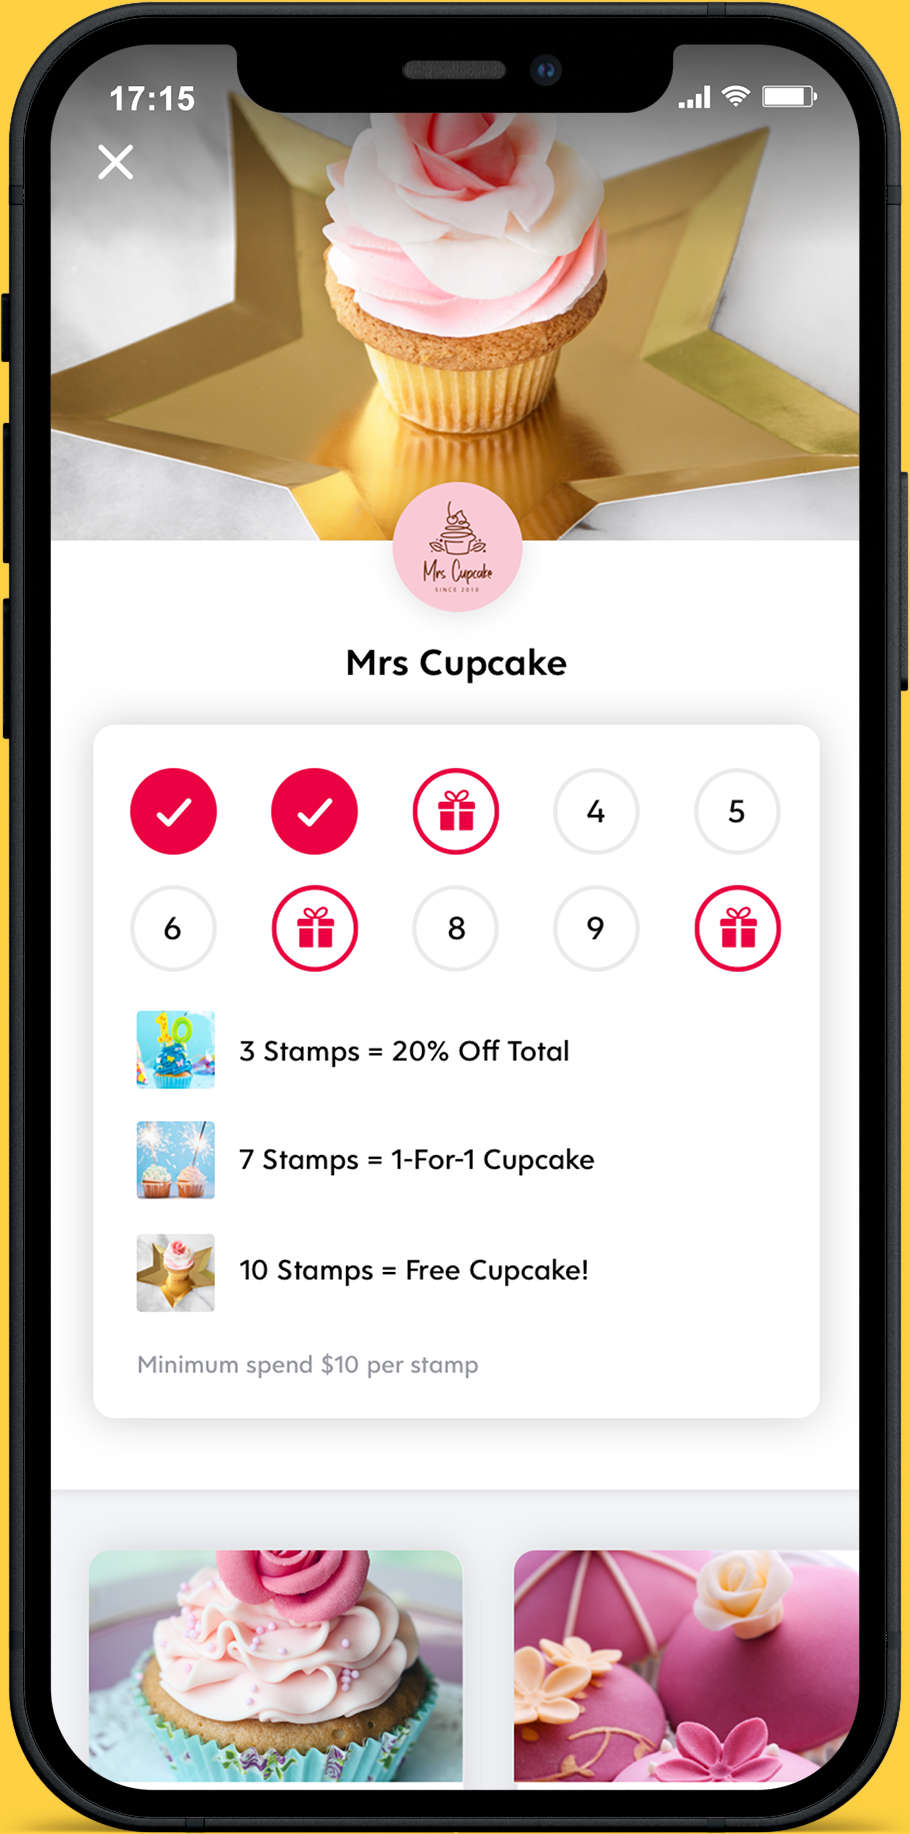 Flex Rewards Loyalty Card Screenshot in an Iphone Frame with Yellow Background